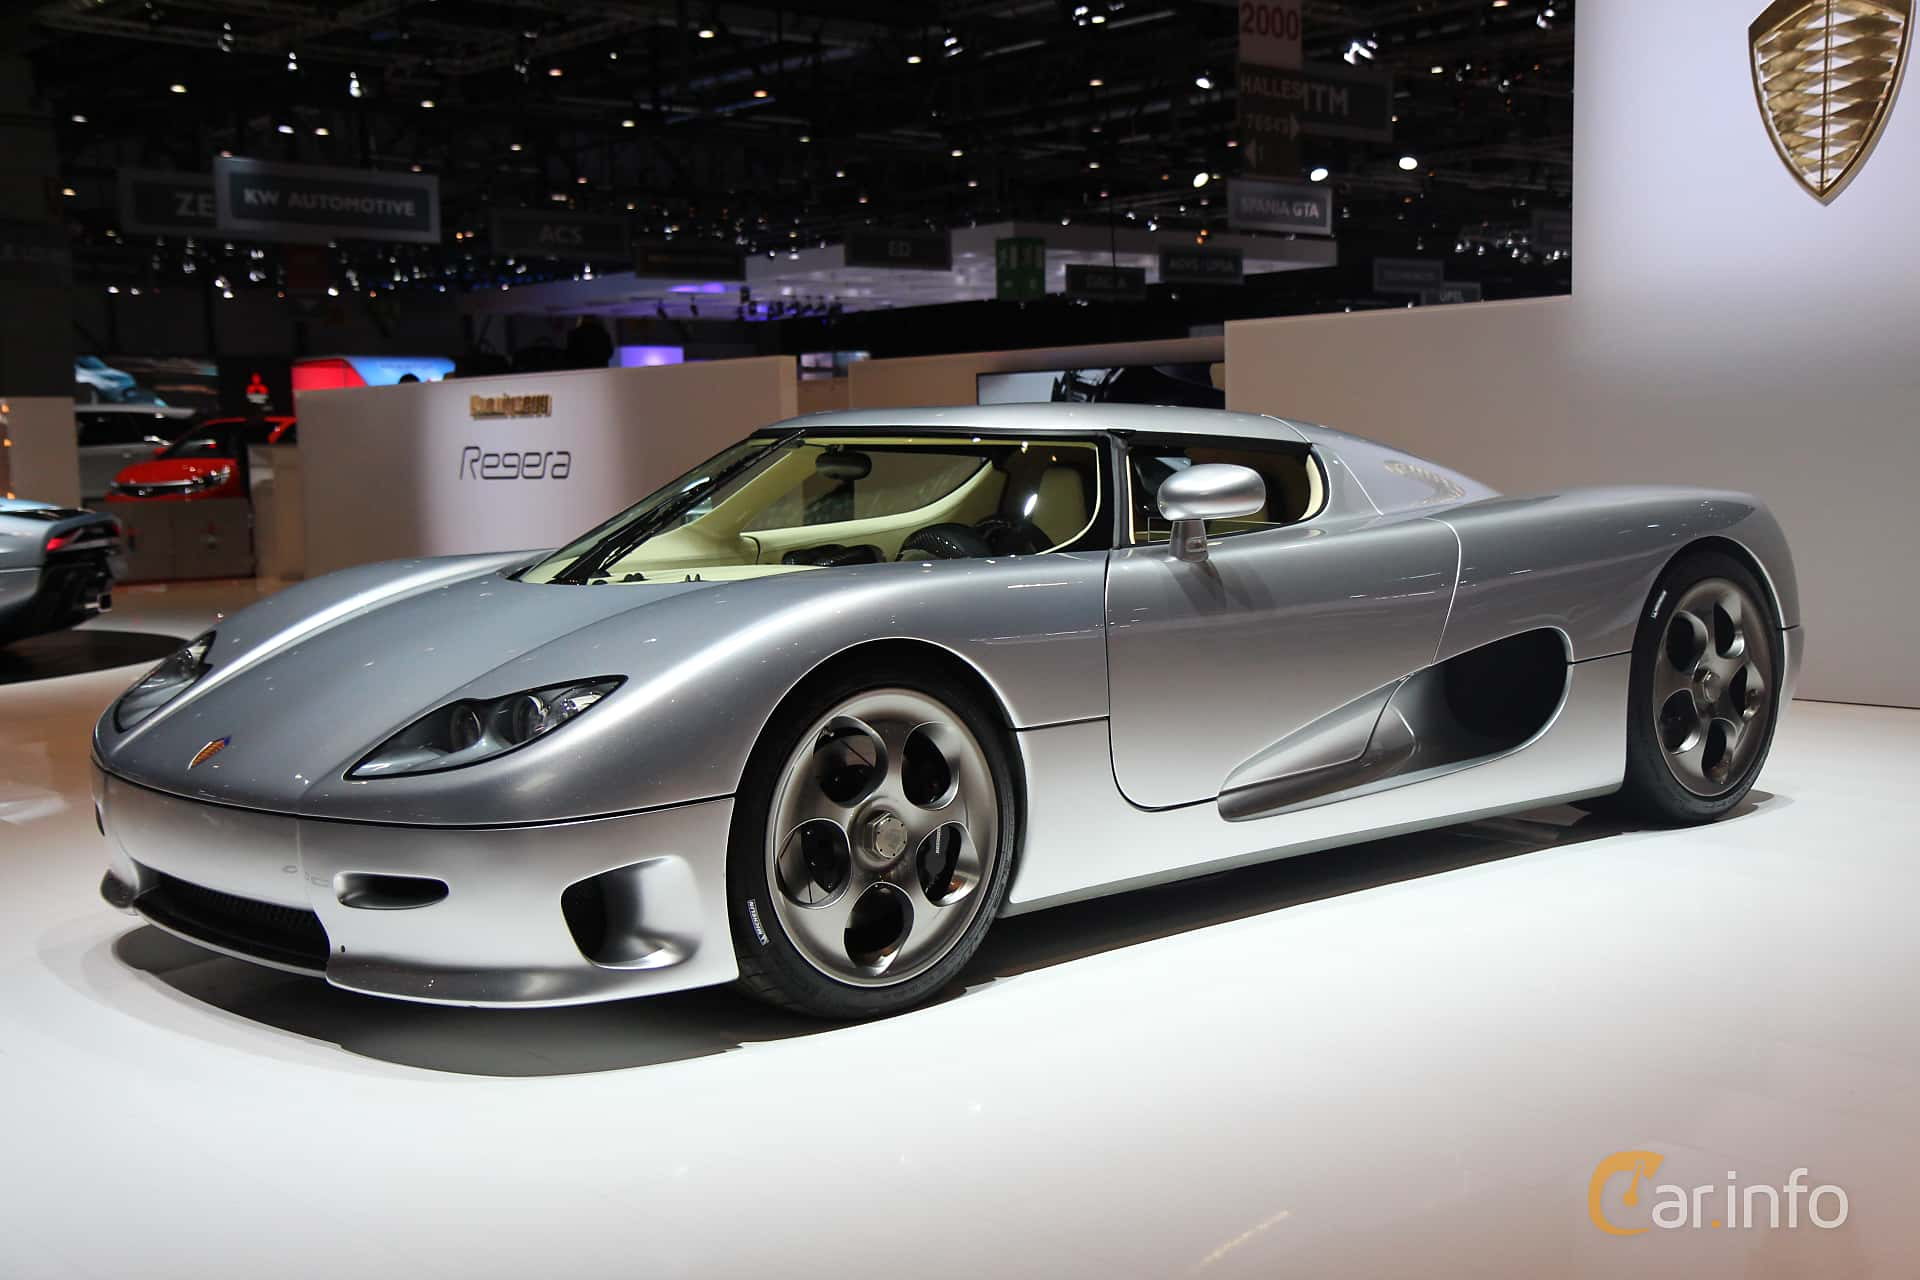 cars from Koenigsegg